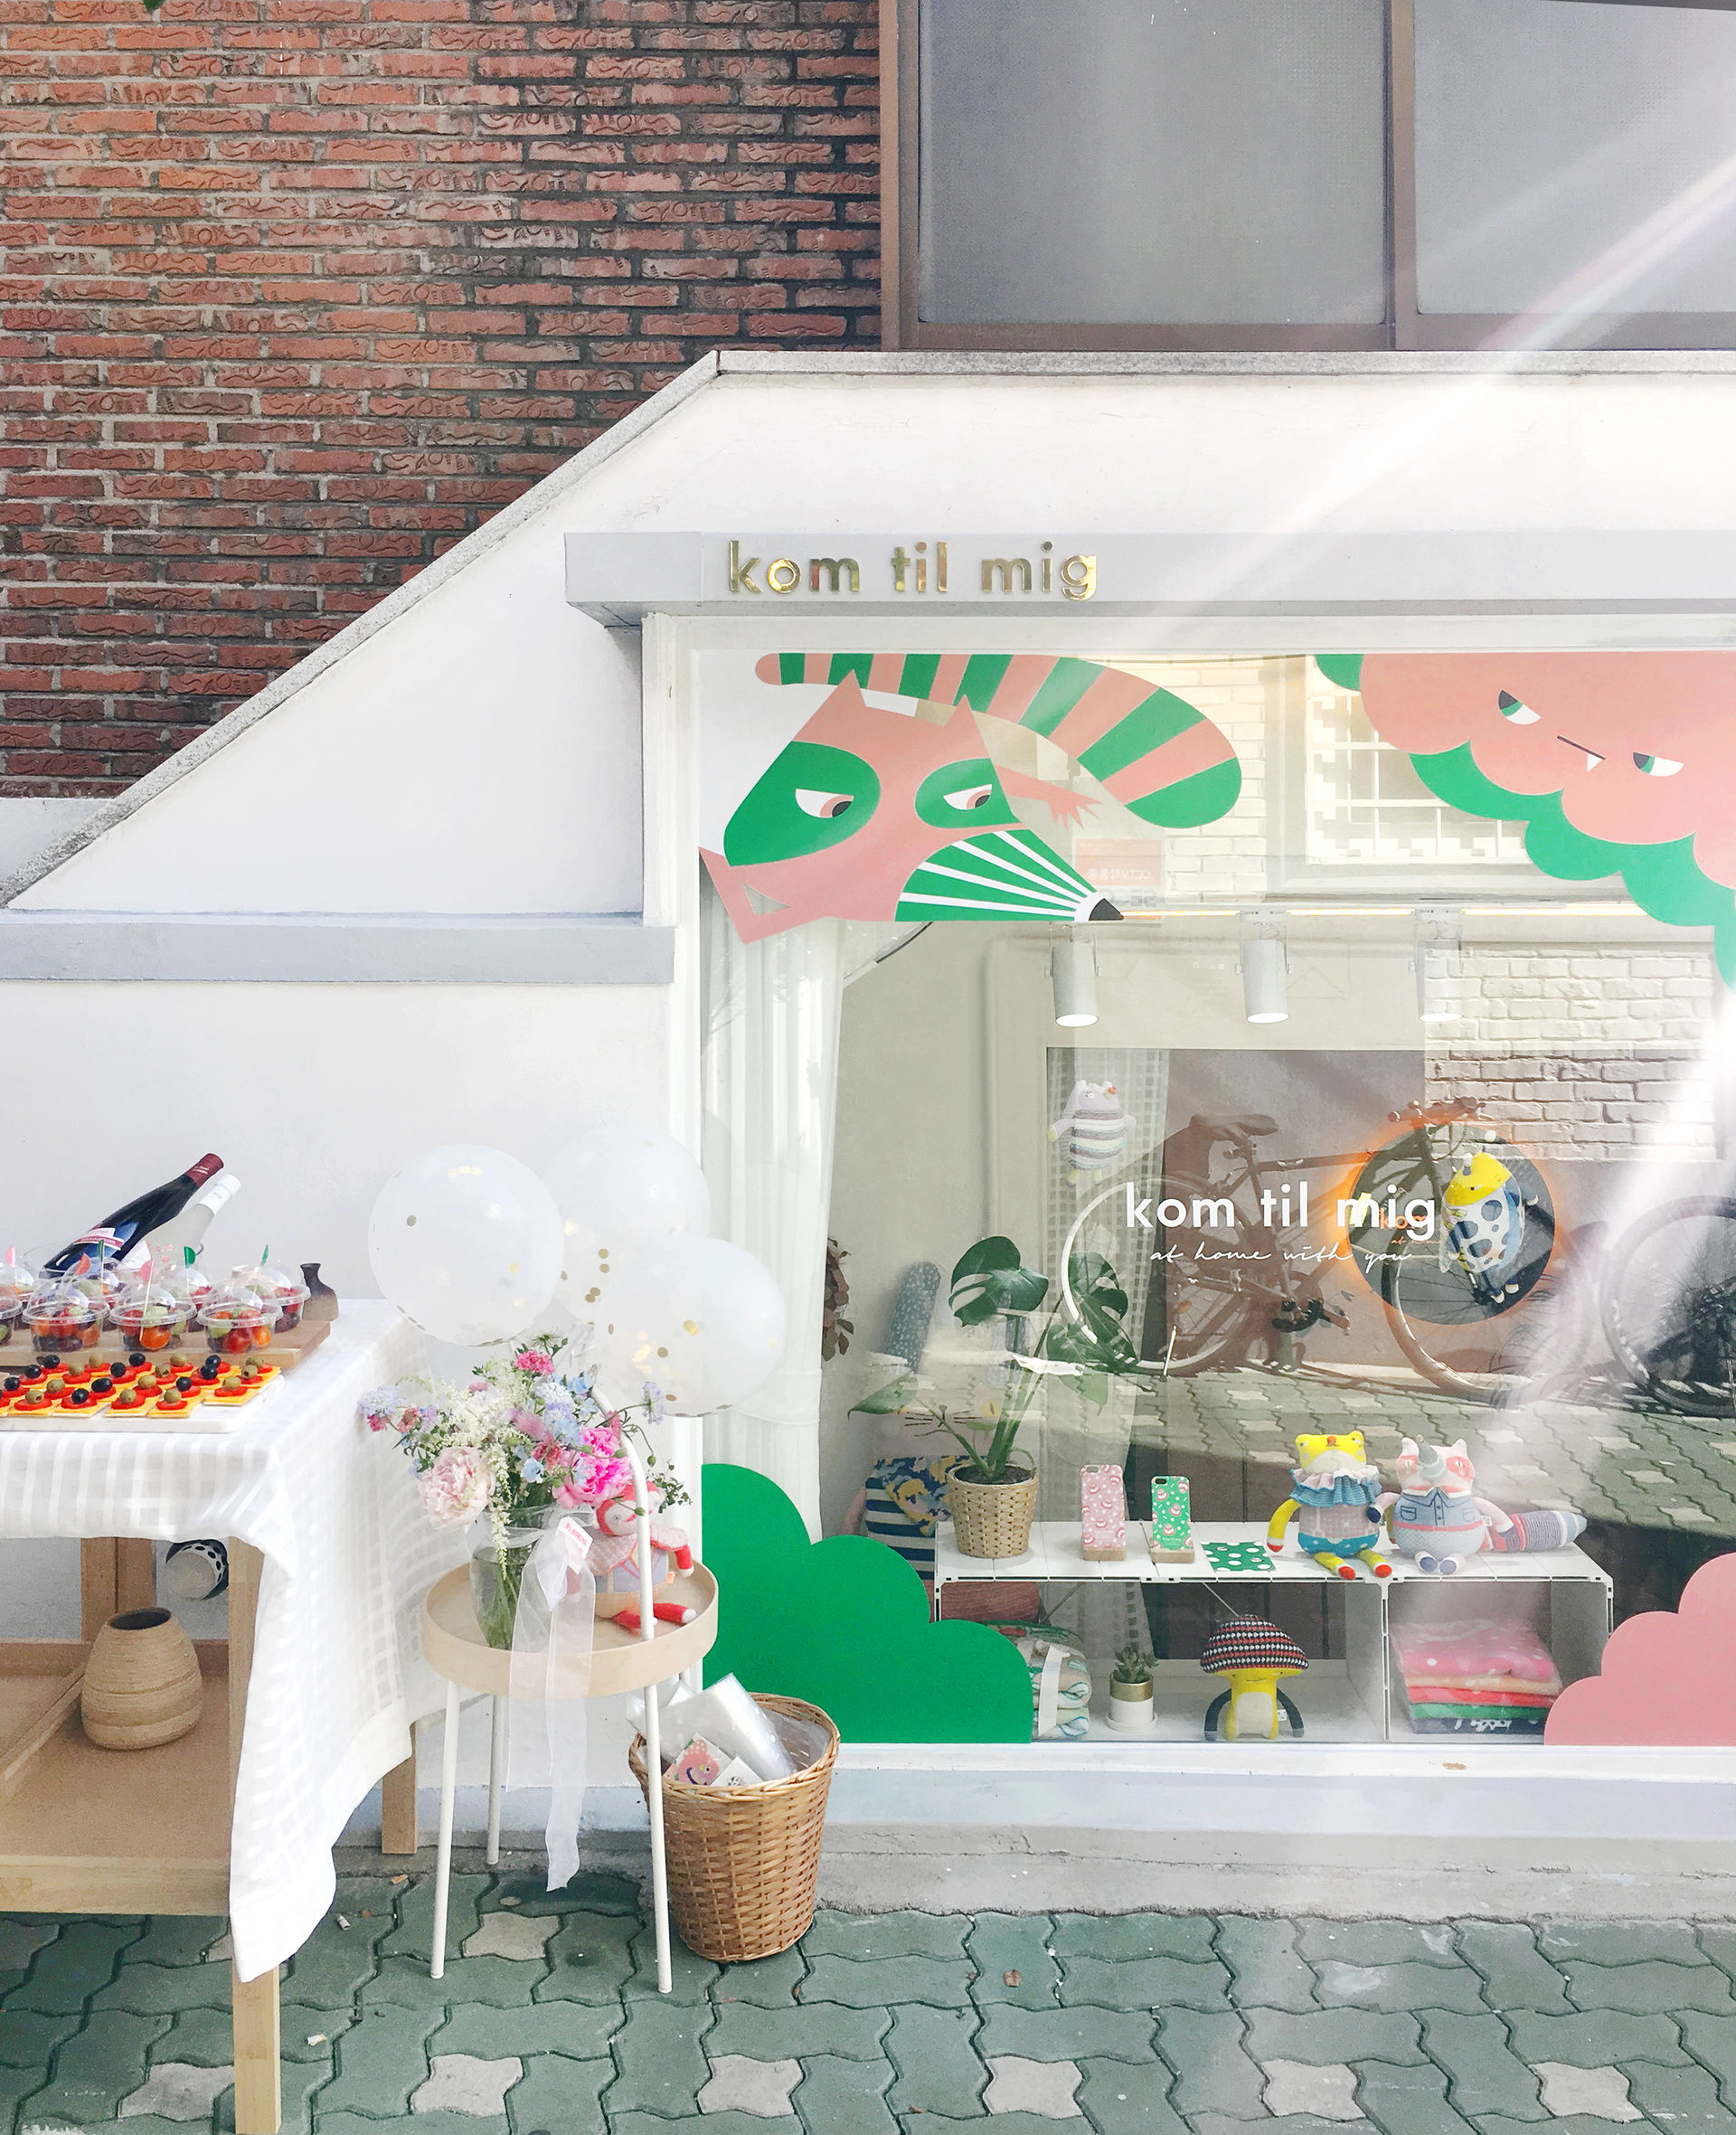 'Kom til mig' Showroom in Seoul